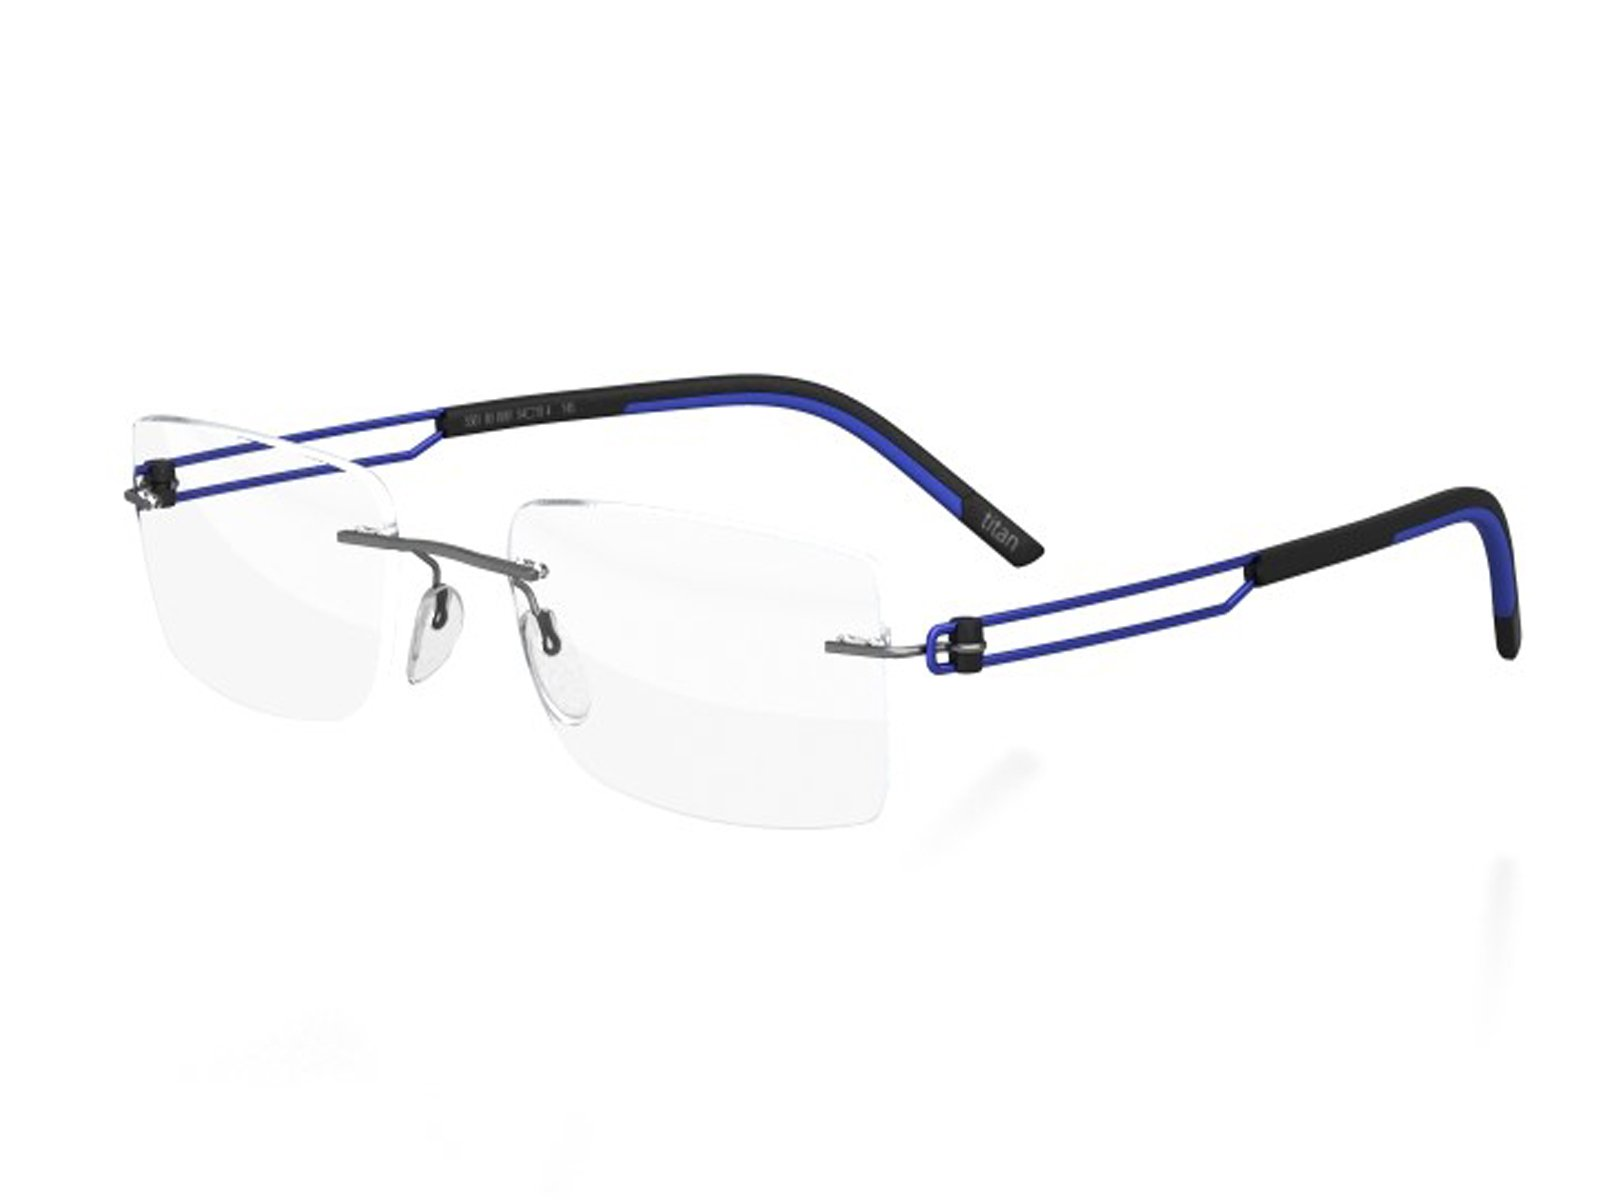 Silhouette Eyeglasses Titan Profile 2016 New Style (cobalt blue / grey) by Silhouette